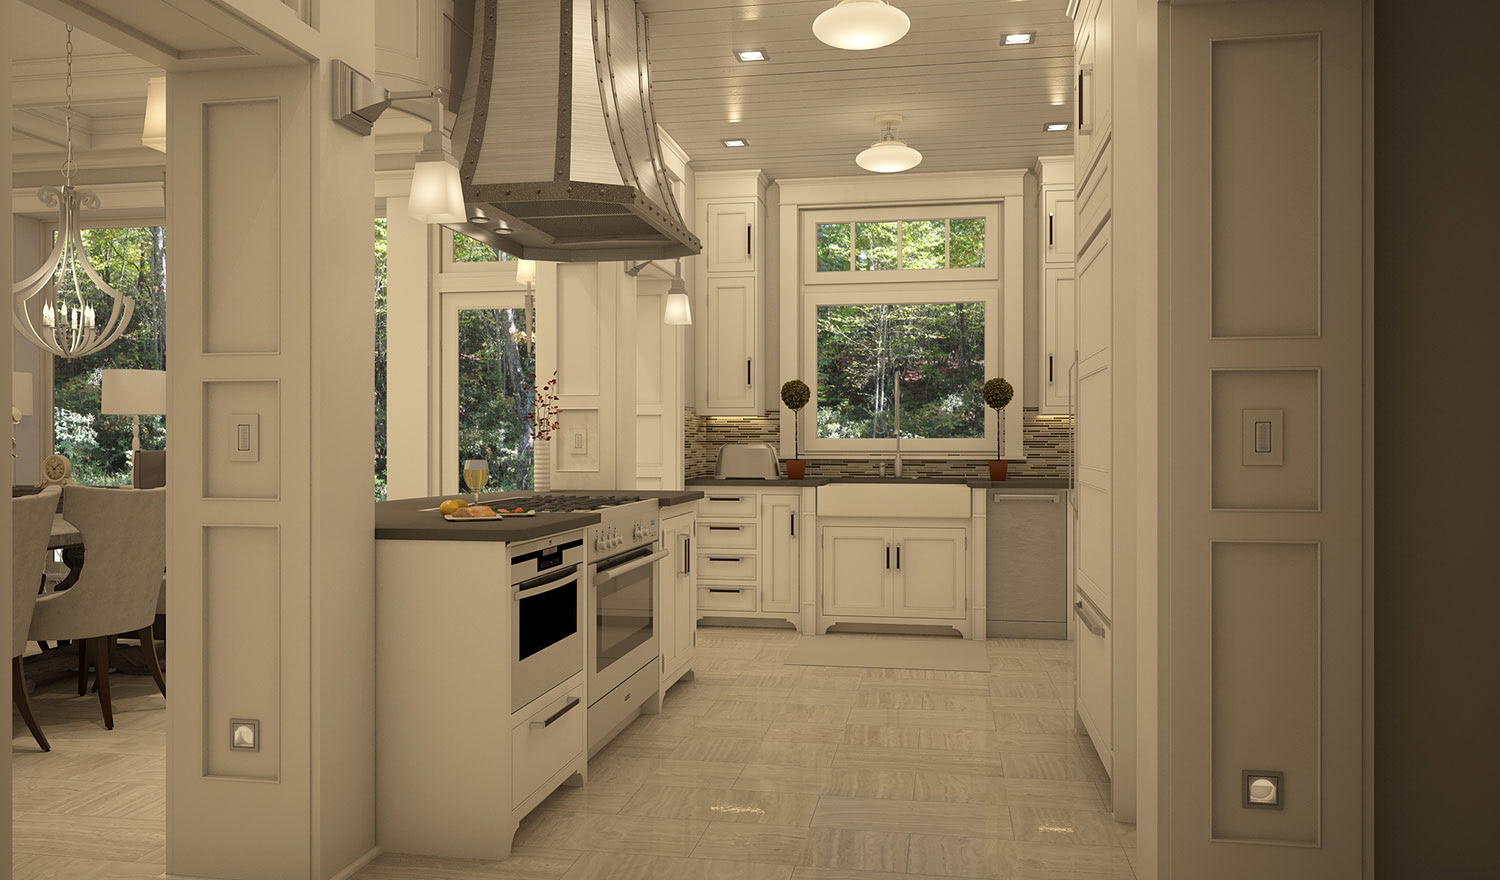 Residential House Kitchen Design